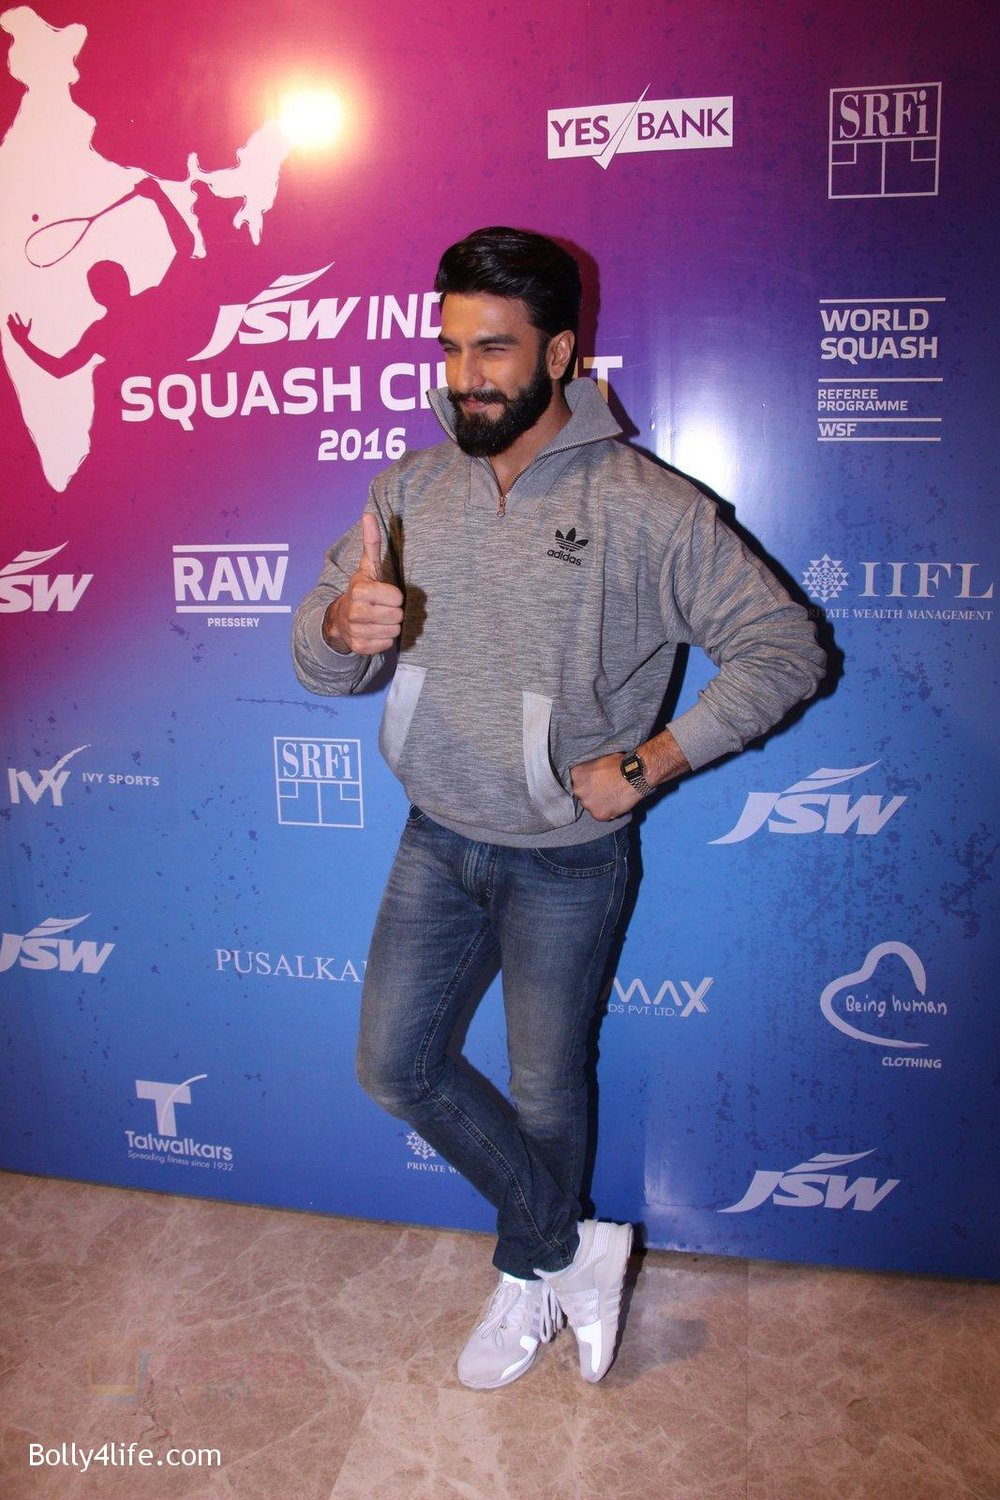 Ranveer-Singh-at-JSW-awards-function-on-2nd-Oct-2016-32.jpg